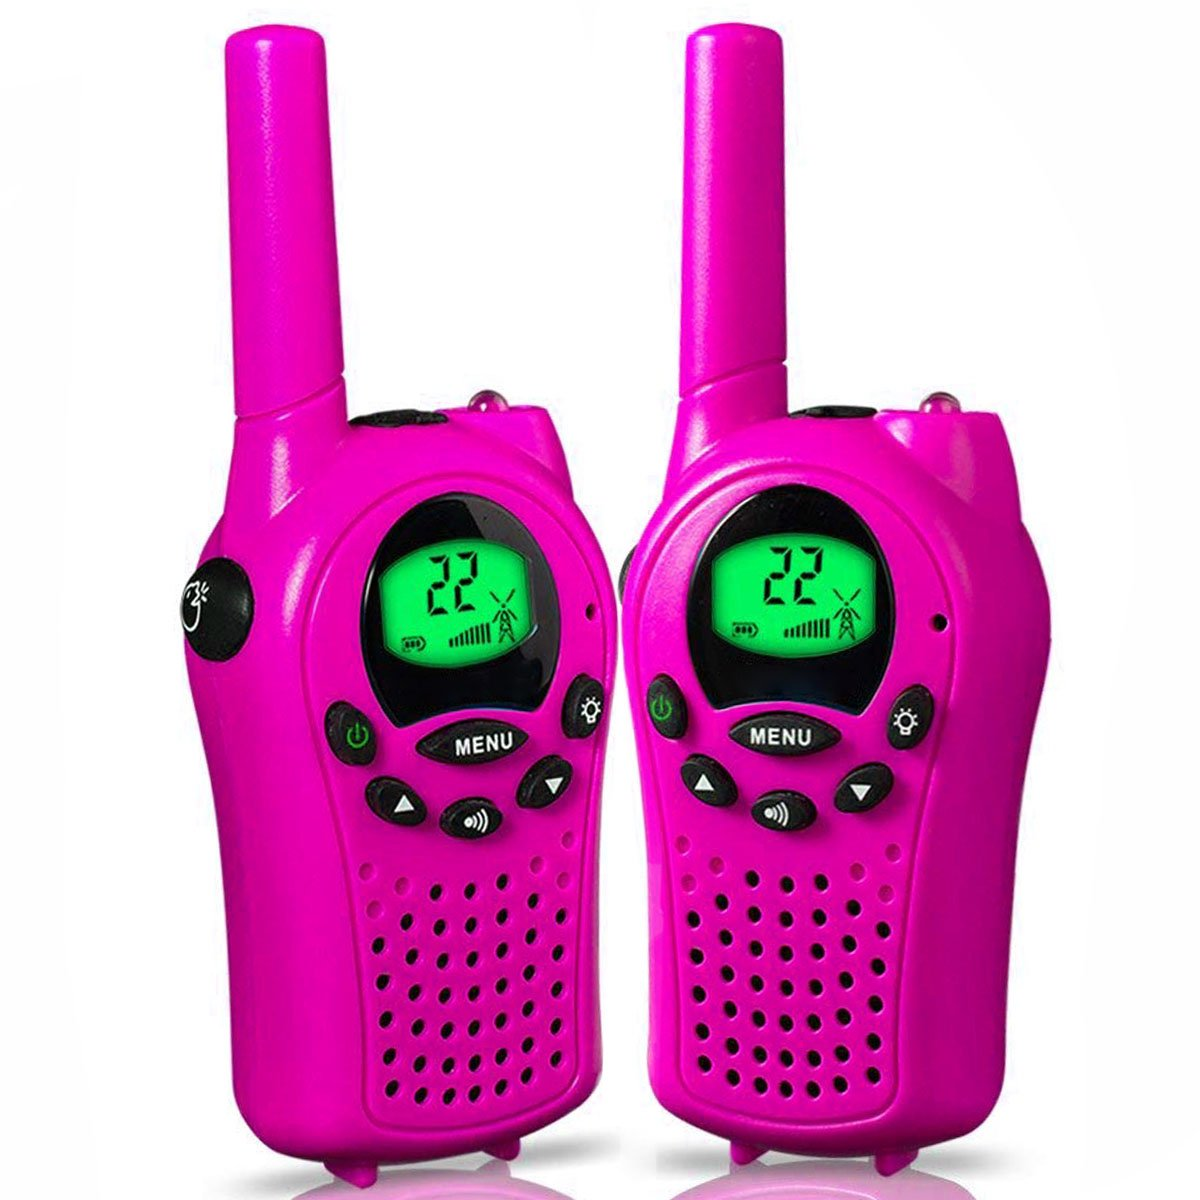 Easony Gifts for 3-12 Year Old Girls, Long Range Walkie Talkies for Kids Gifts for Teen Girls Toys for 3-12 Year Old Girls Gifts for Kids age 3-12 Pink ESUSTS06